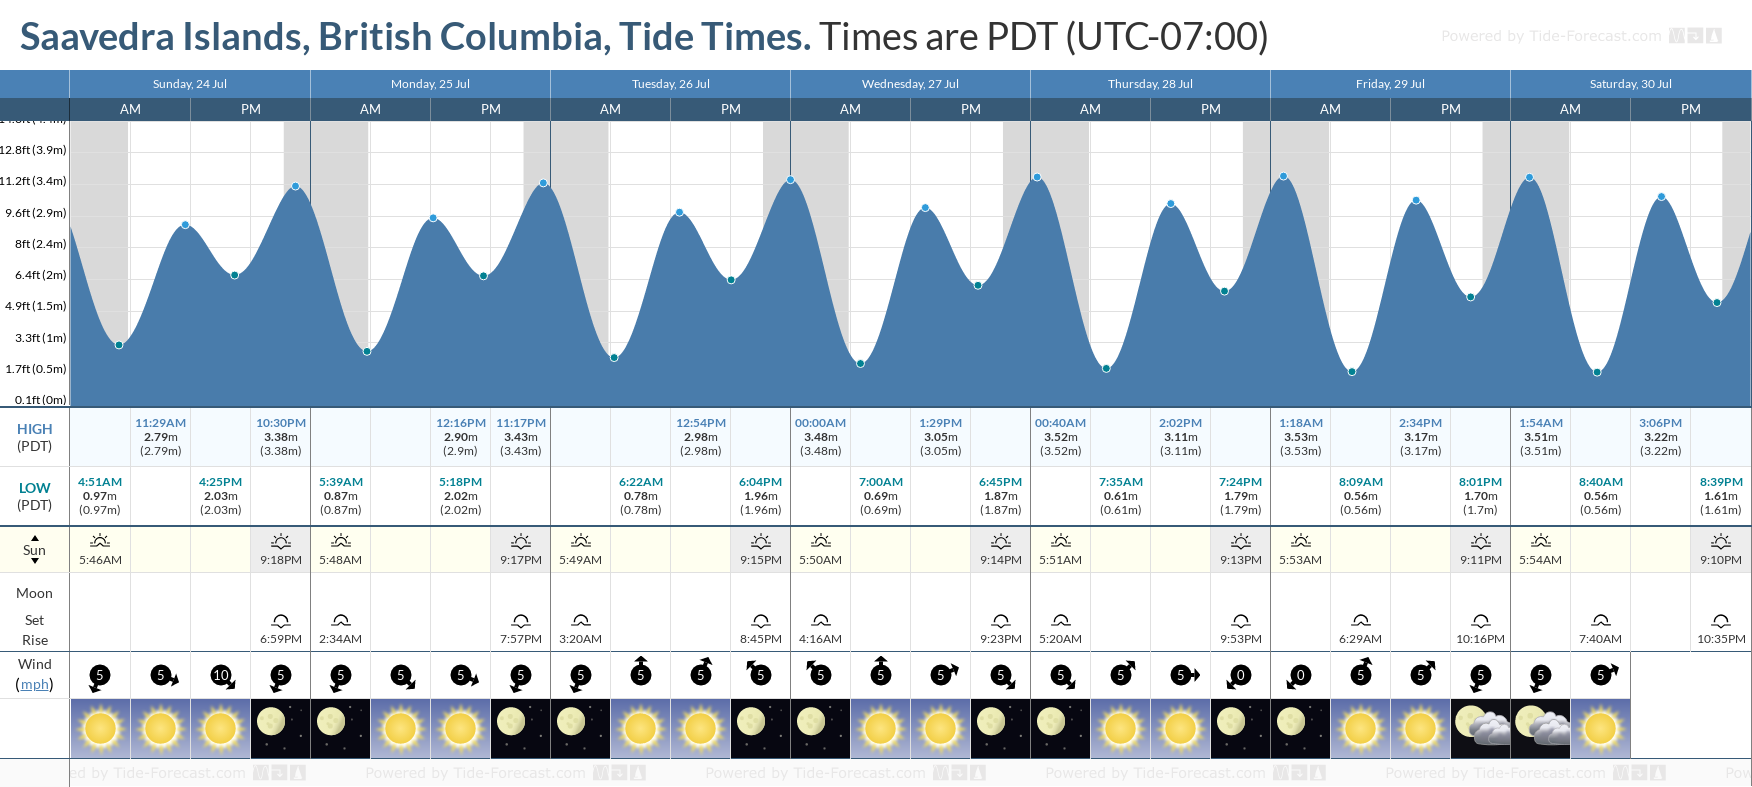 Saavedra Islands, British Columbia Tide Chart including high and low tide tide times for the next 7 days